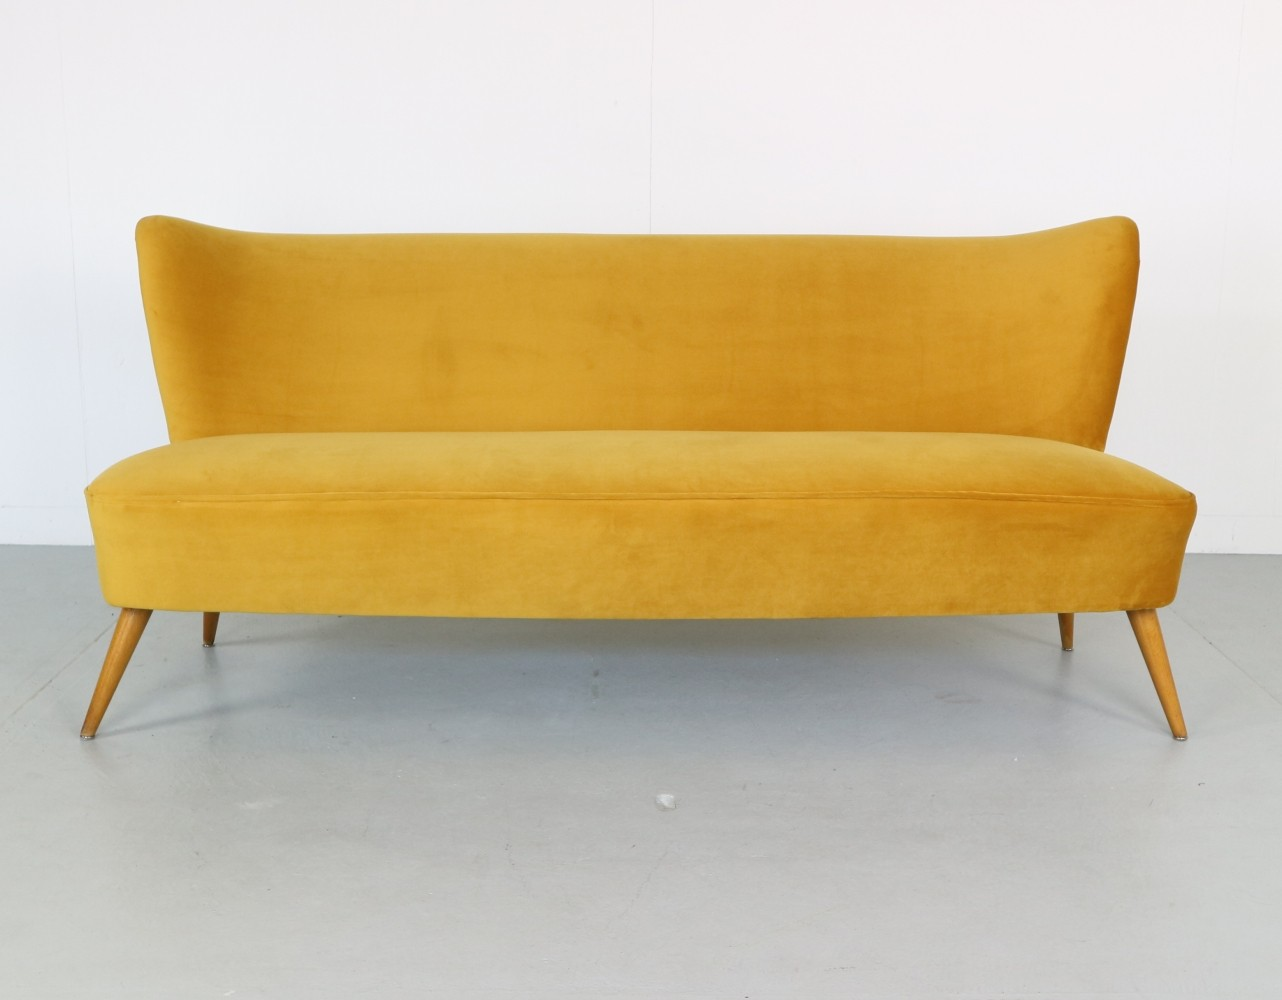 Cocktail Sofa from the 1950s